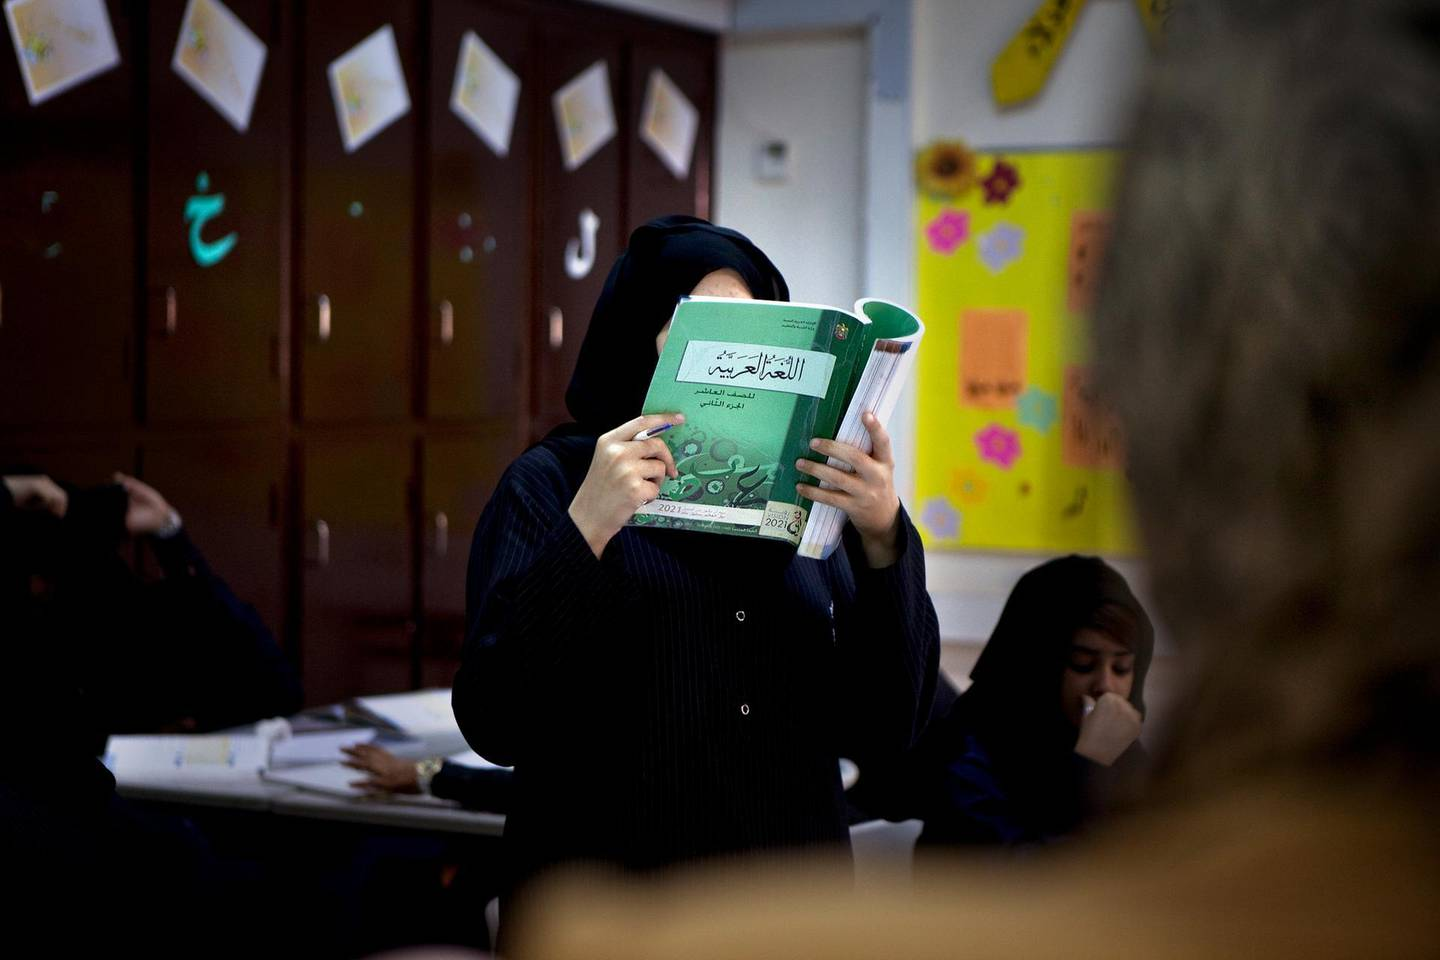 A young Emirati student reads out loud during an Arabic lesson on Thursday morning, April 28, 2011, at the Butti Public School in Bani Yas. (Silvia R‡zgov‡ / The National)